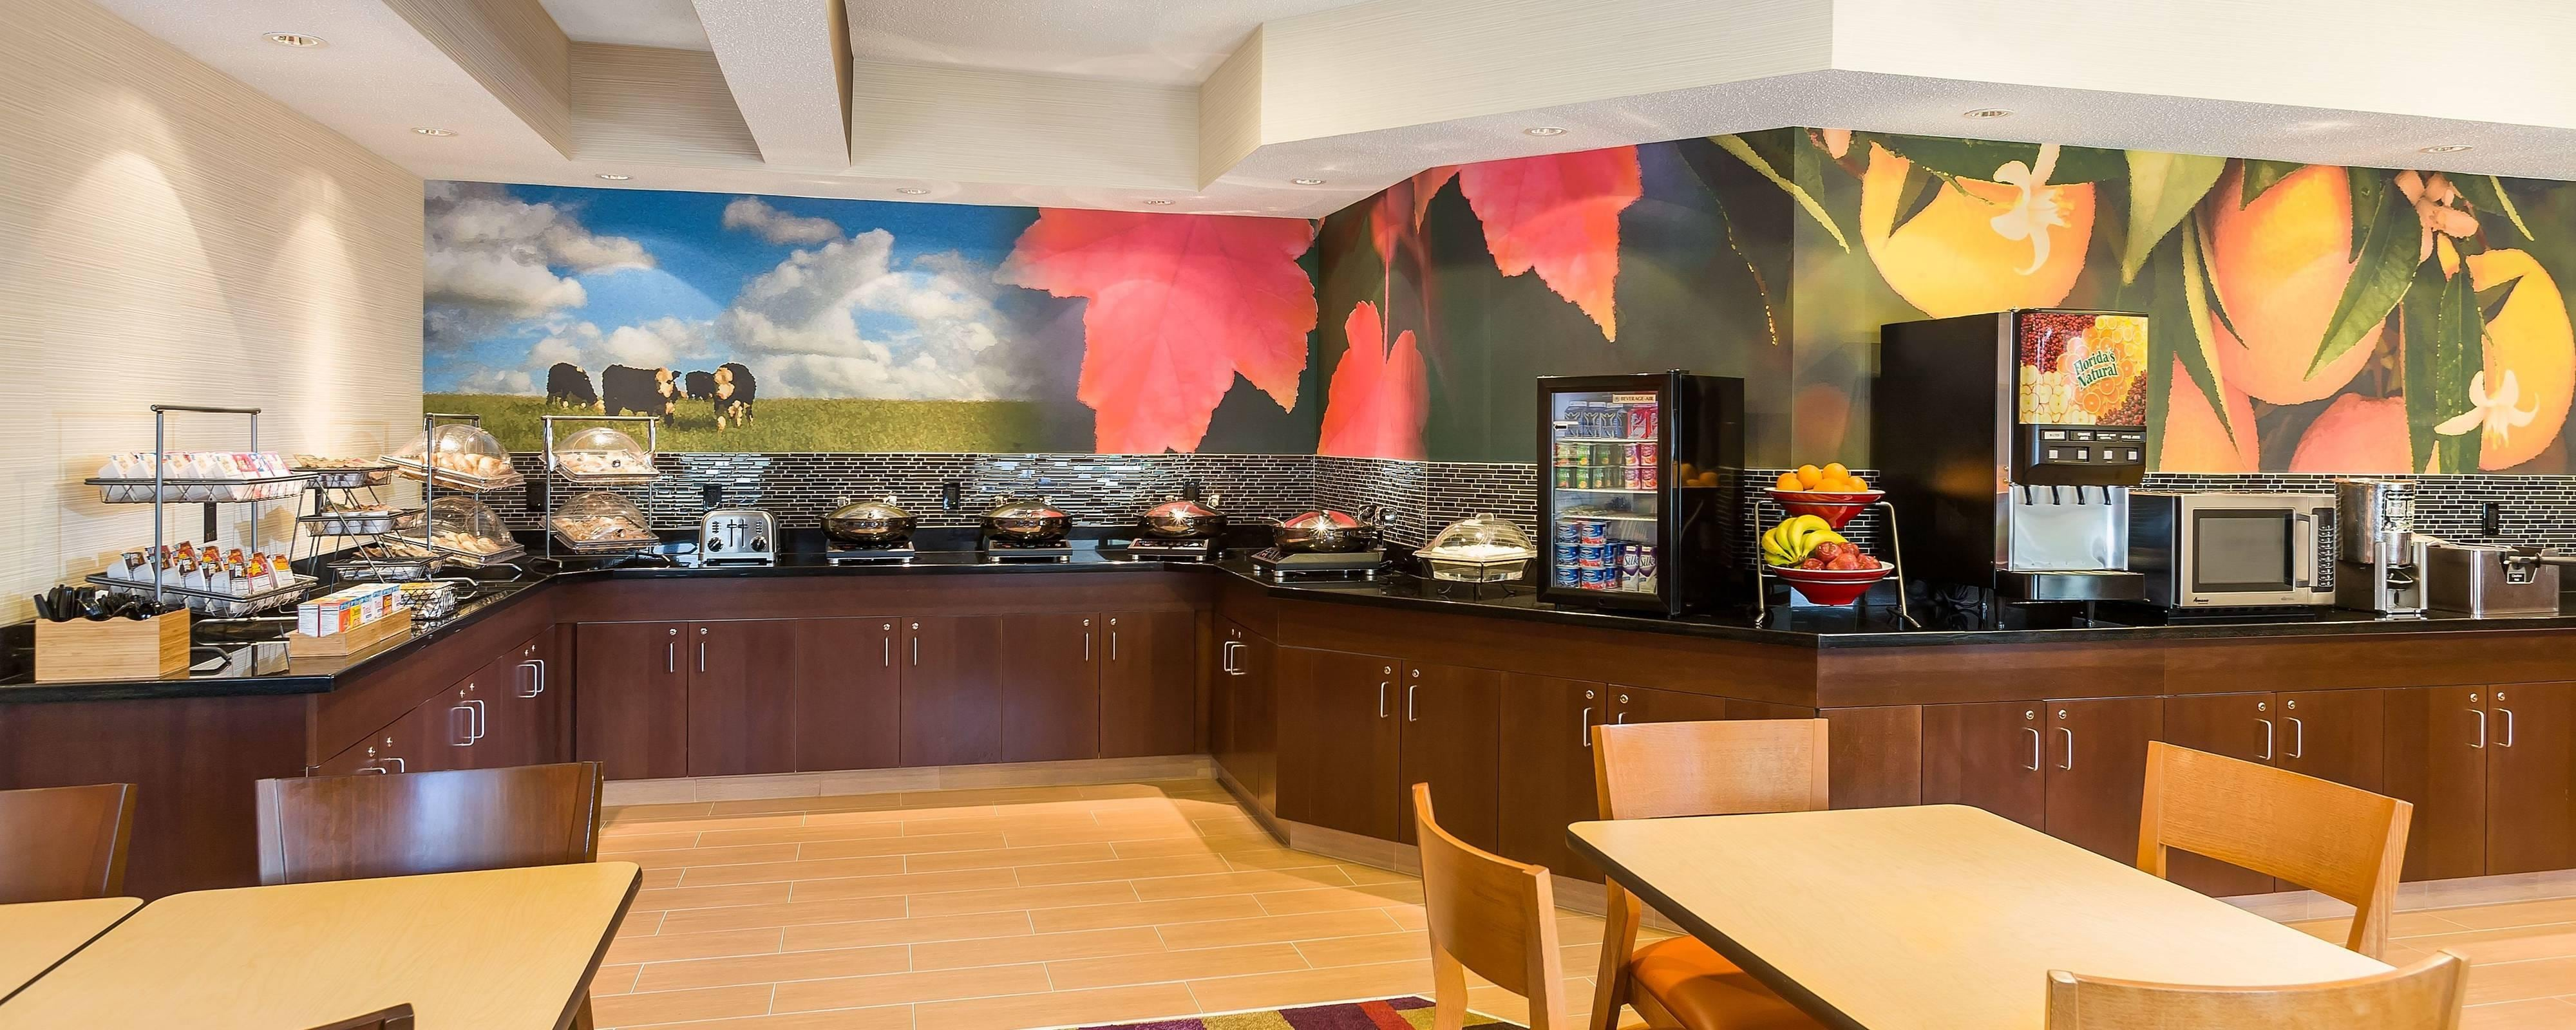 Restaurants in Grand Rapids, MI | Fairfield Inn & Suites Grand Rapids